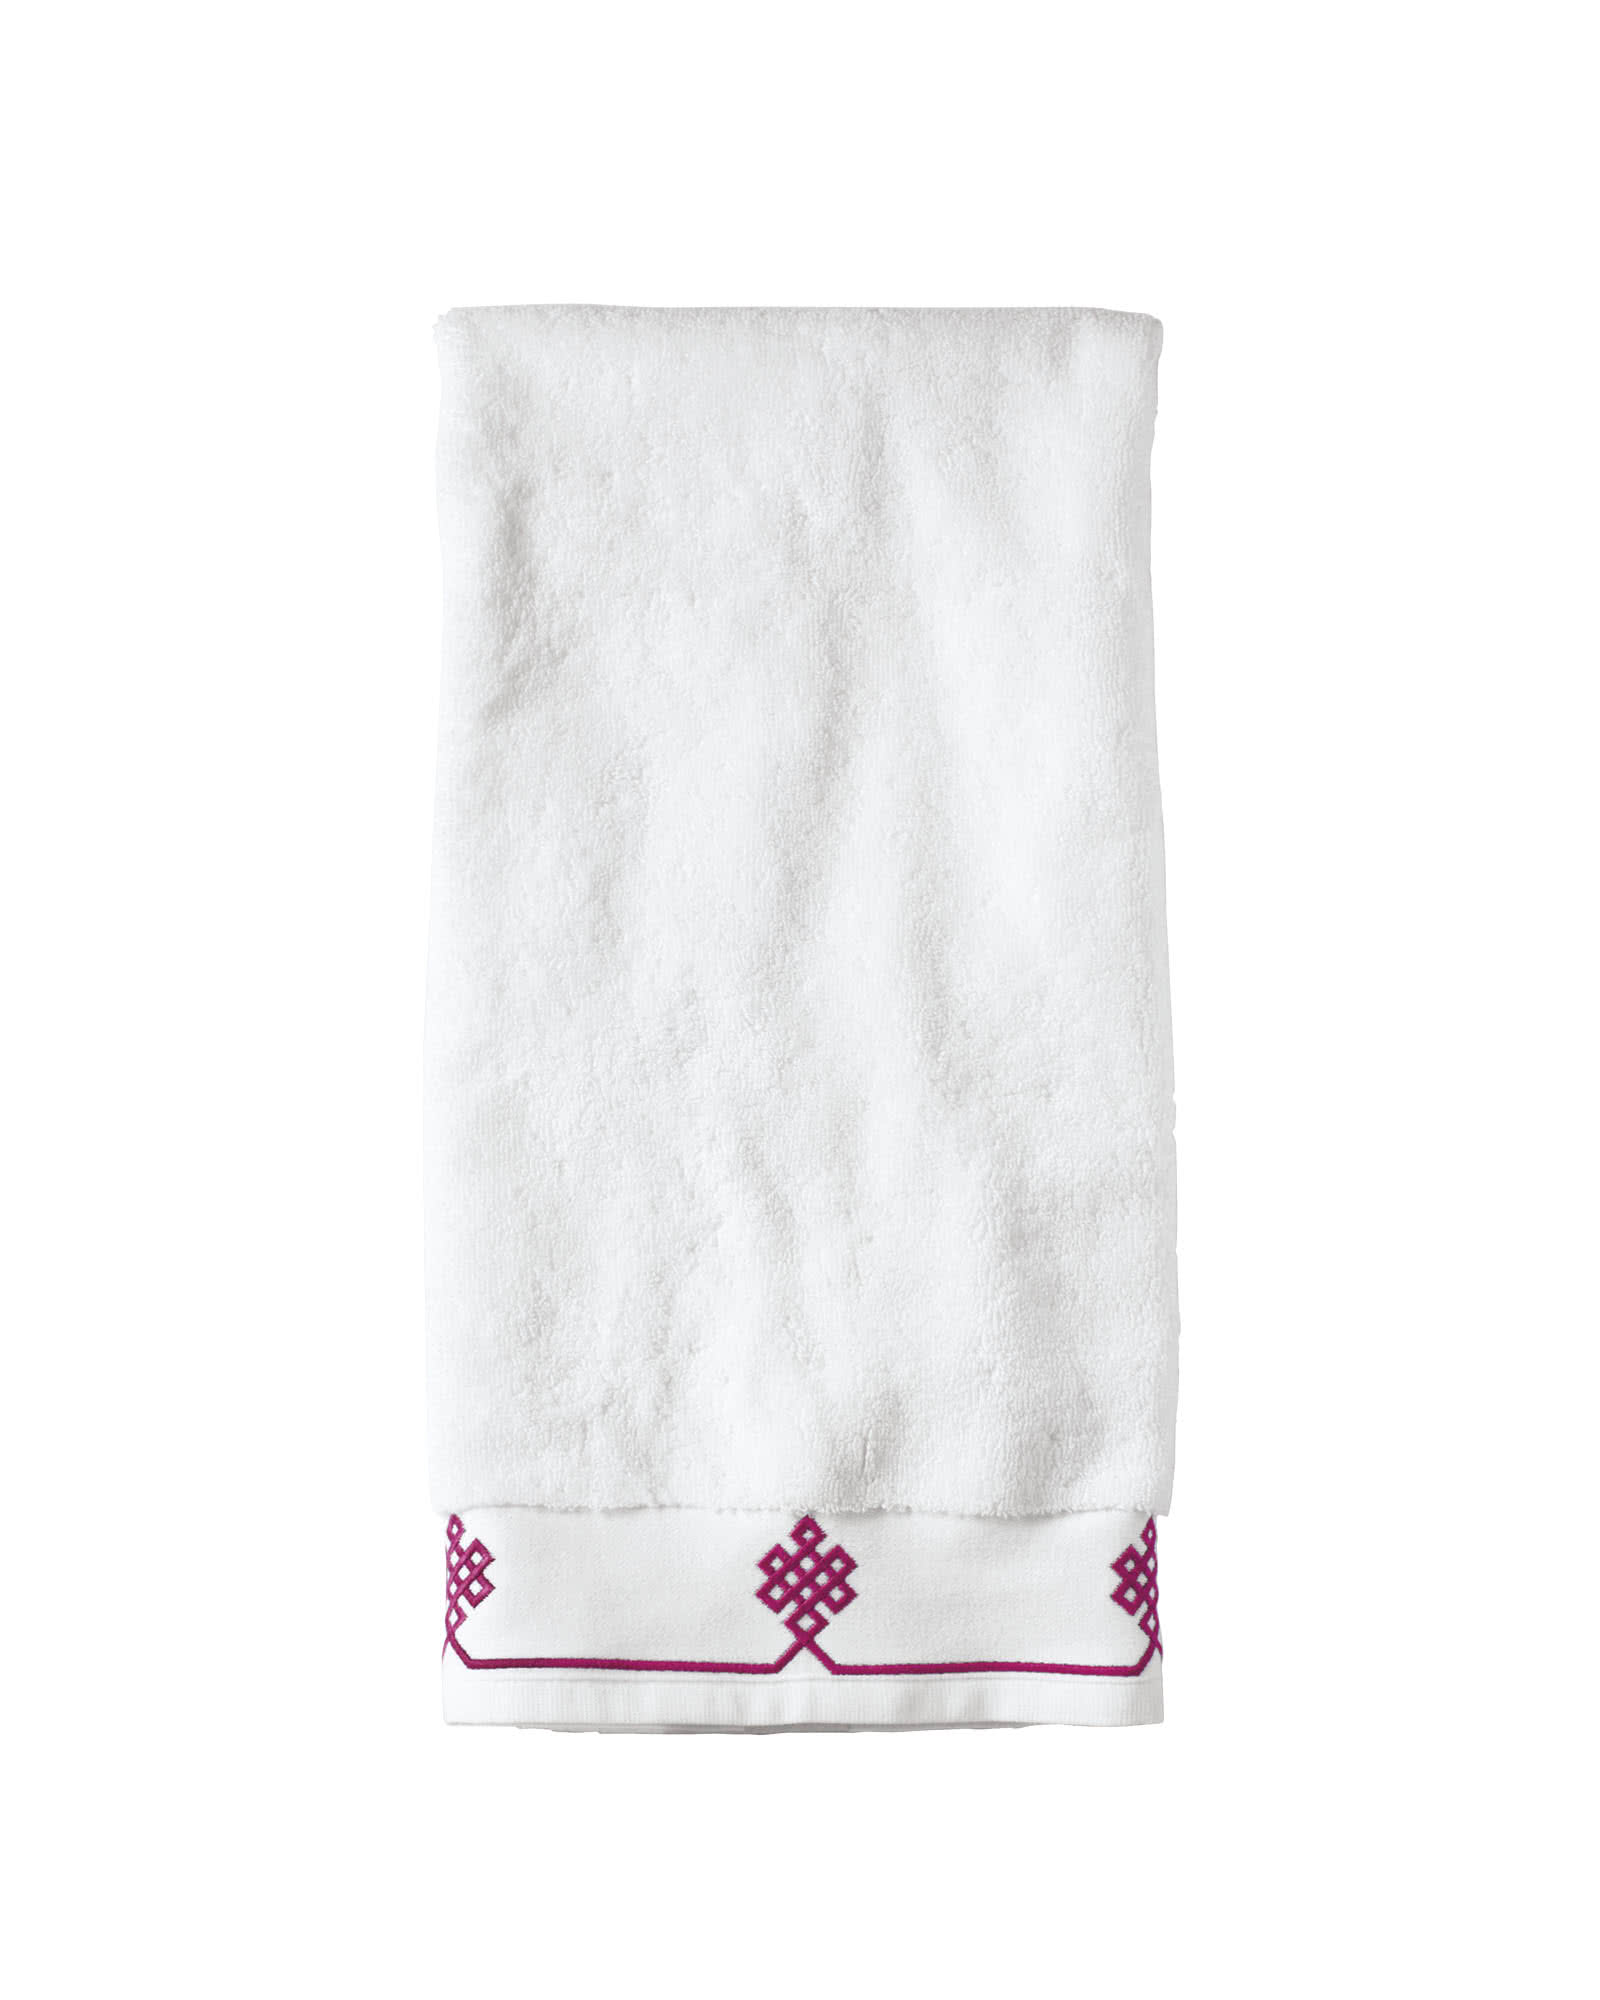 Gobi Bath Towels